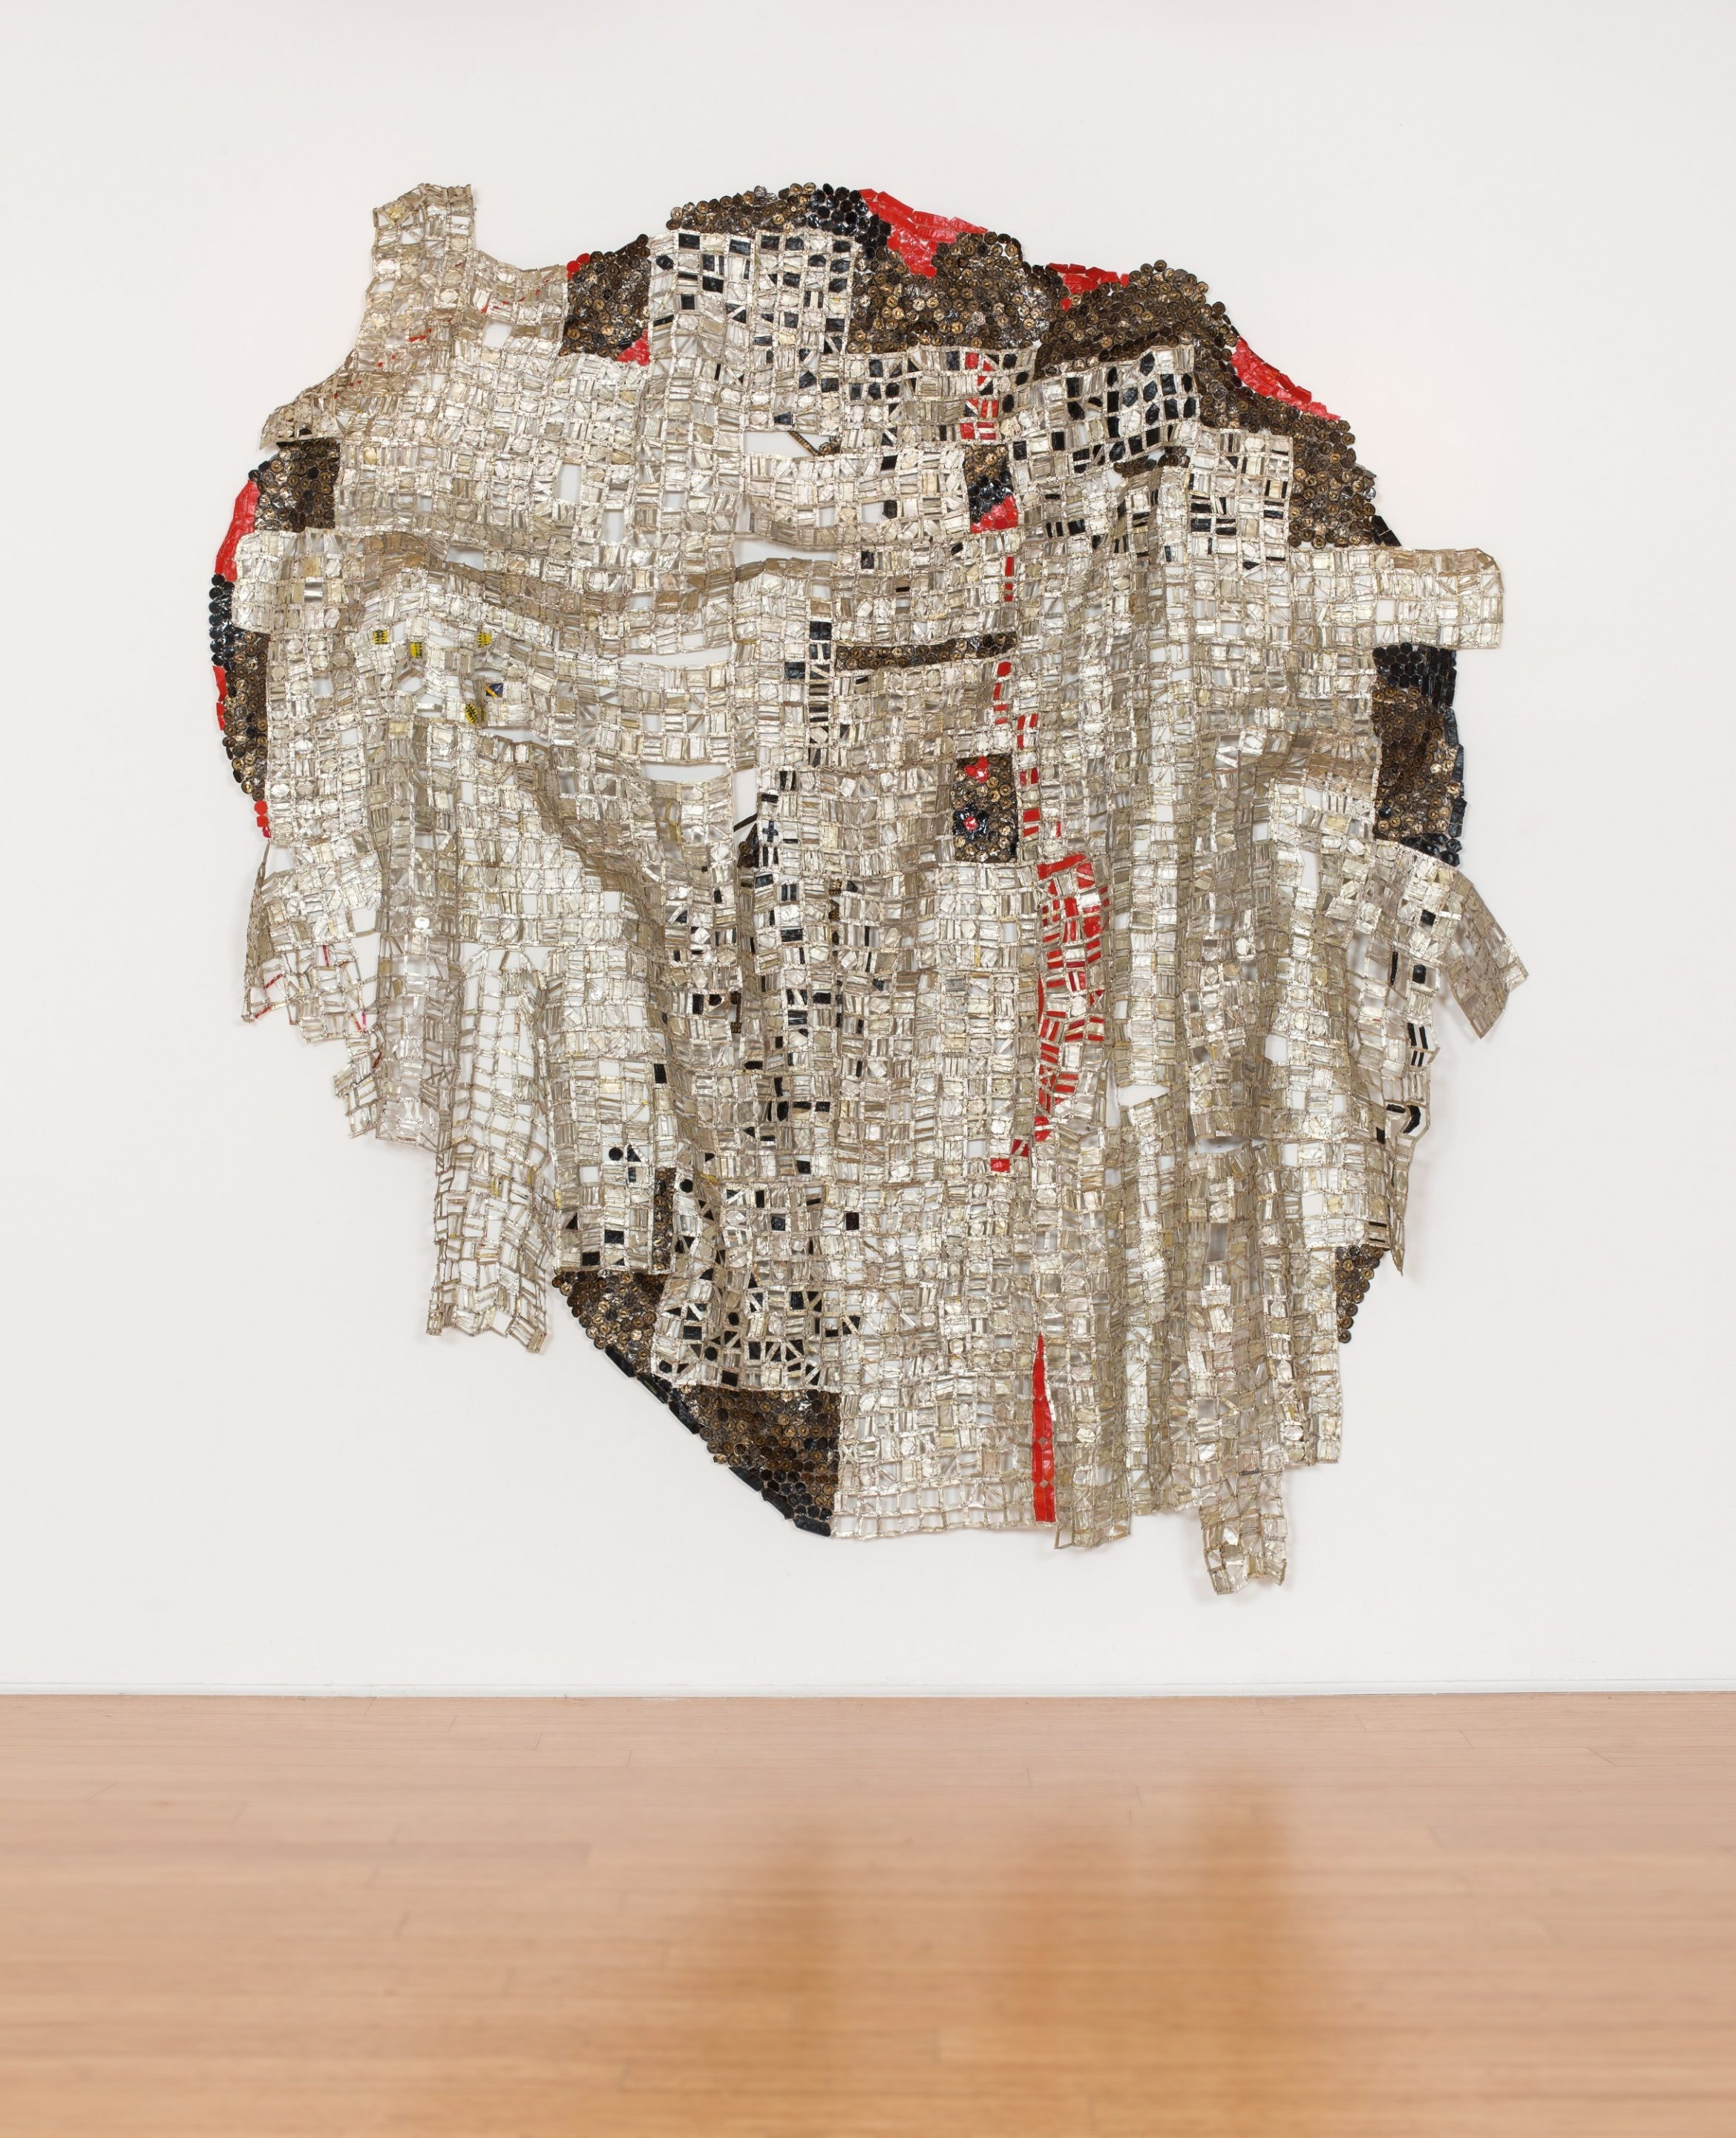 El Anatsui. Blood Of Sweat, 2015, Tapas de aluminio y alambre de cobre. Foto por Jonathan Greet